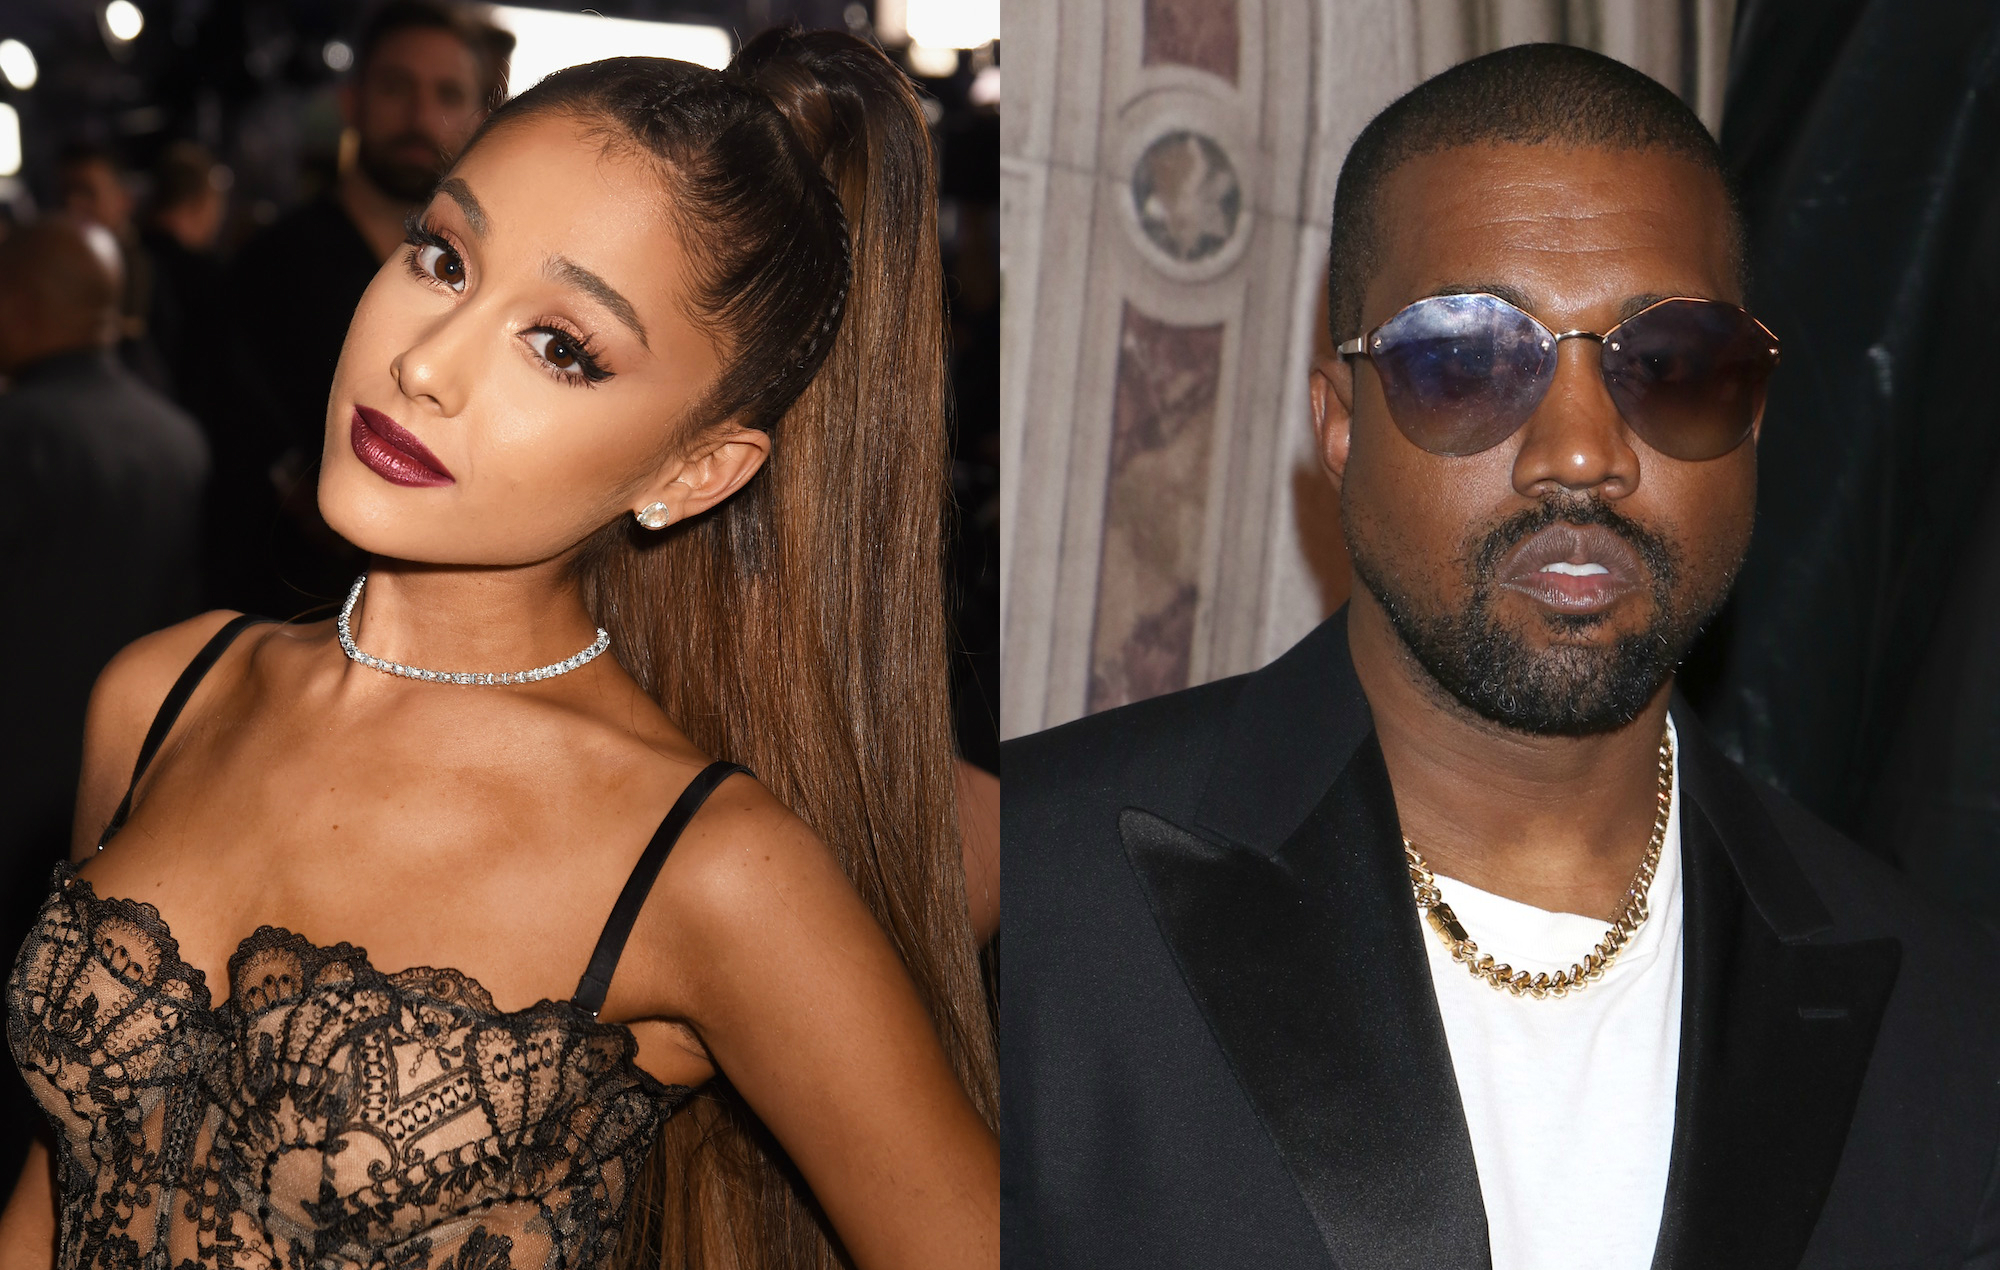 Kanye West booked for 'SNL' because Ariana Grande dropped out